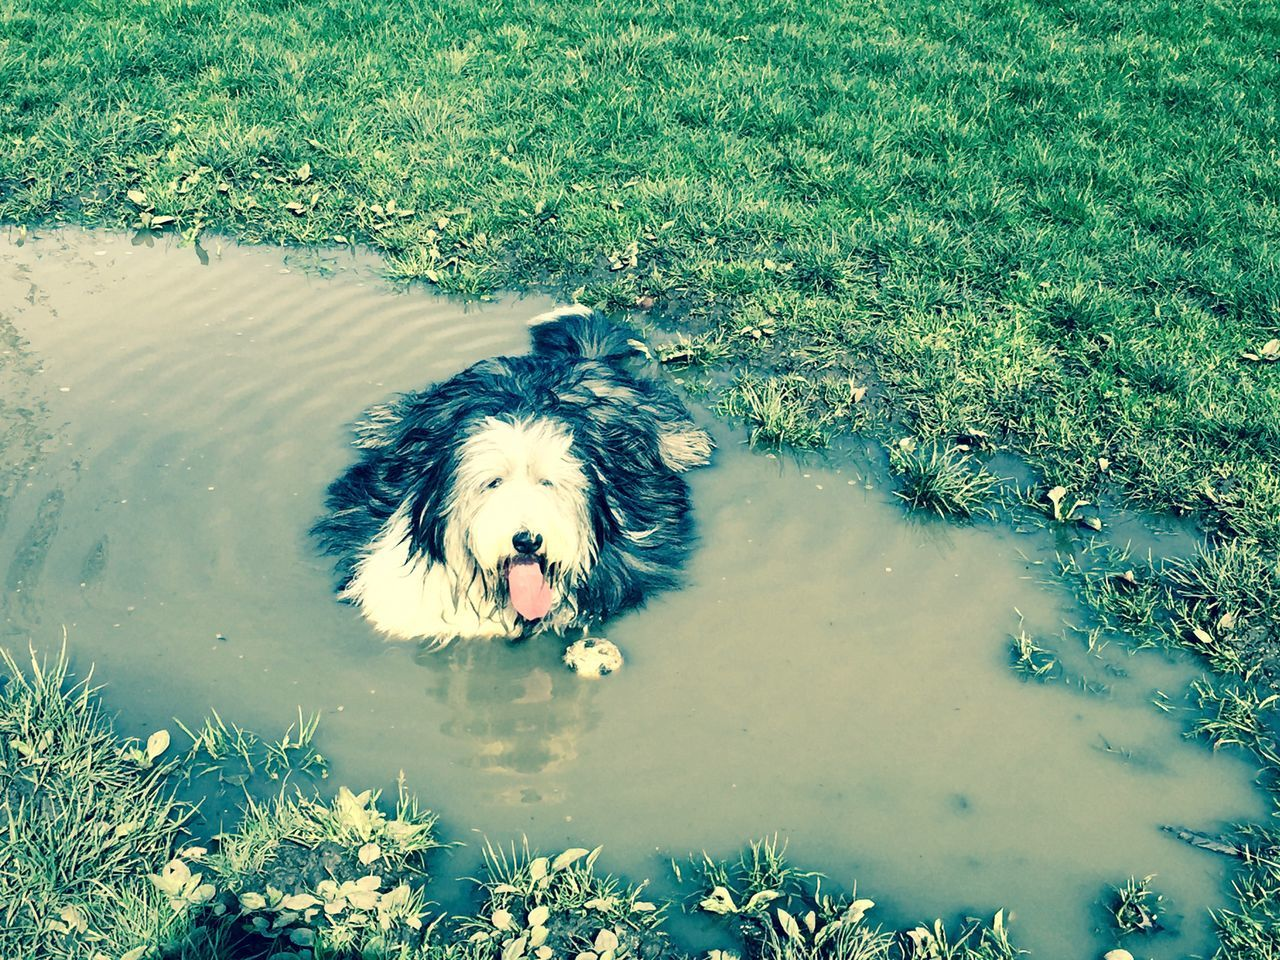 Bearded Collie Breather Dog Dog Walking Doggie Doggy Doglover Dogs Of EyeEm Dogslife Dogstagram Dog❤ Field Giant Puddle Grass High Angle View Mudbath Muddy Puddles Puddle Regents Park Rest Restaurants Resting Water